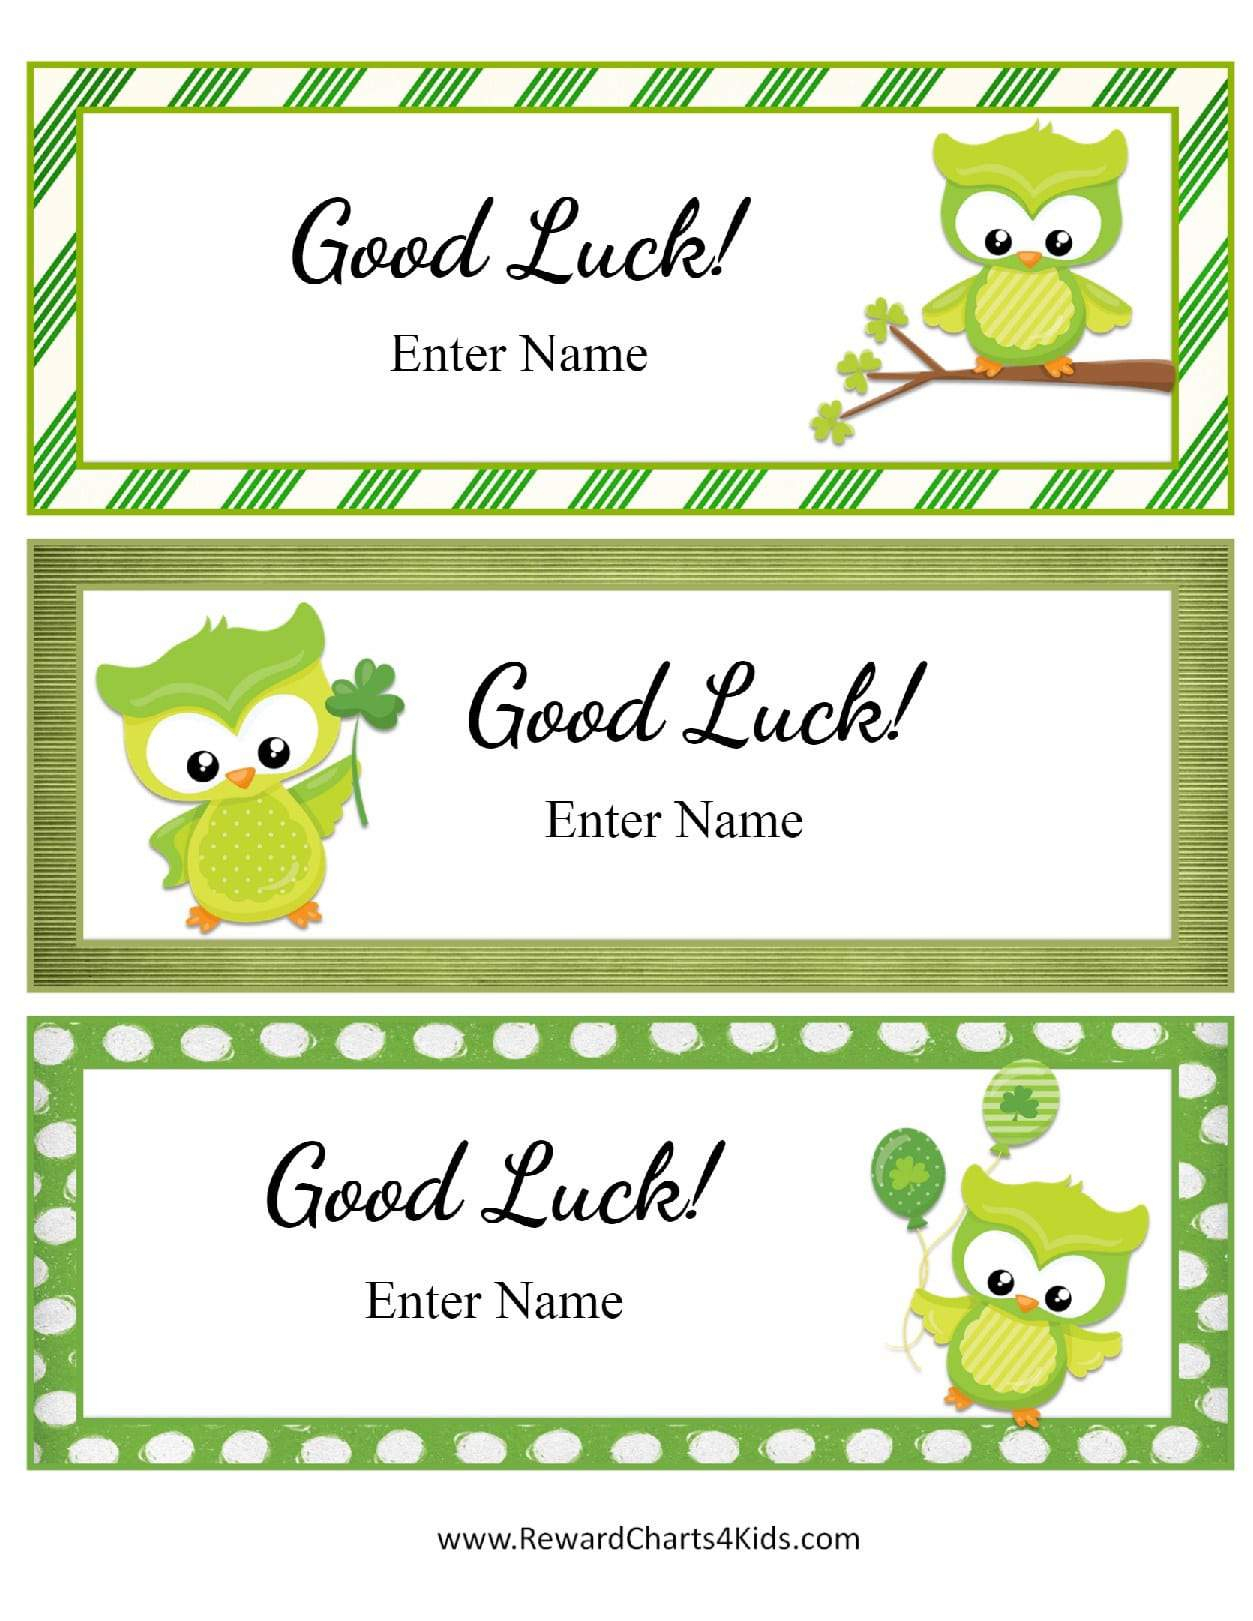 Free Good Luck Cards For Kids   Customize Online & Print At Home - Free Printable Good Luck Cards